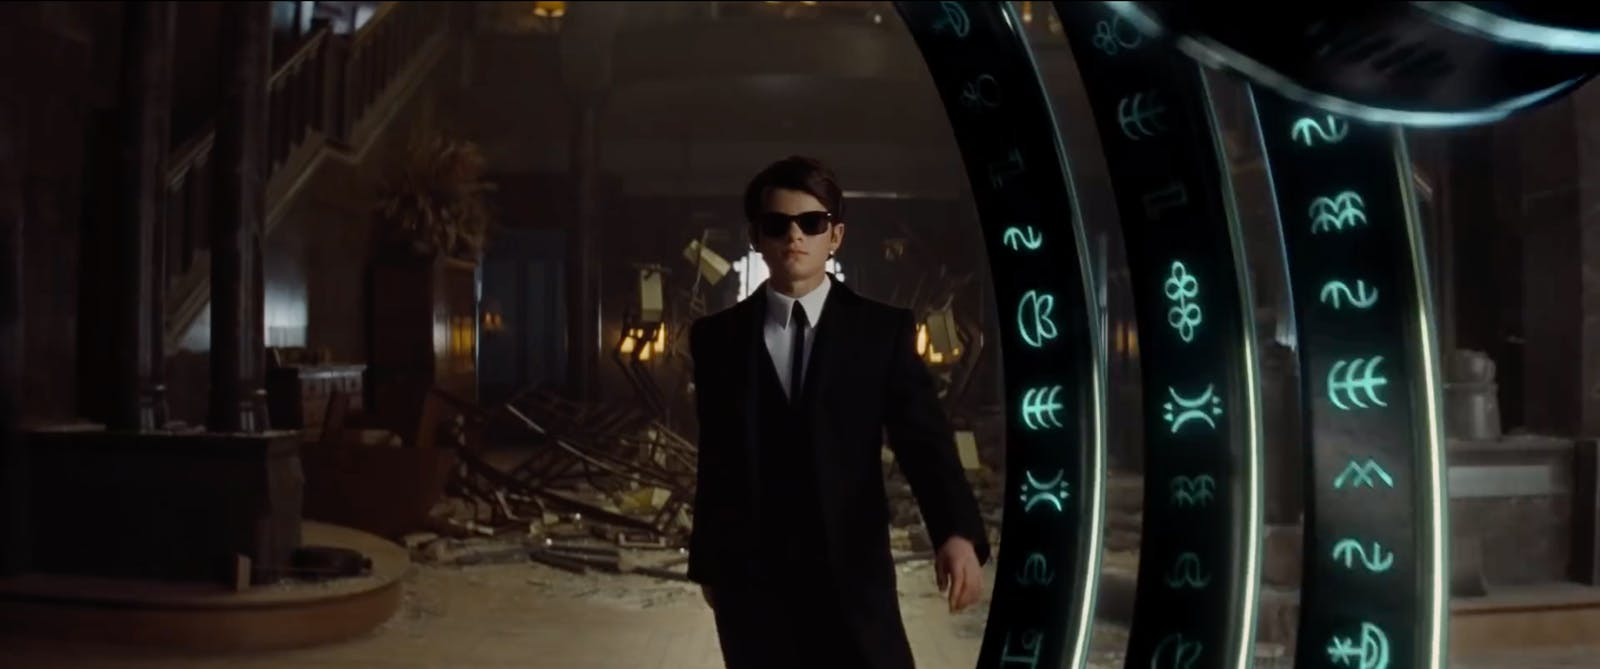 Trailer till Disneys Artemis Fowl